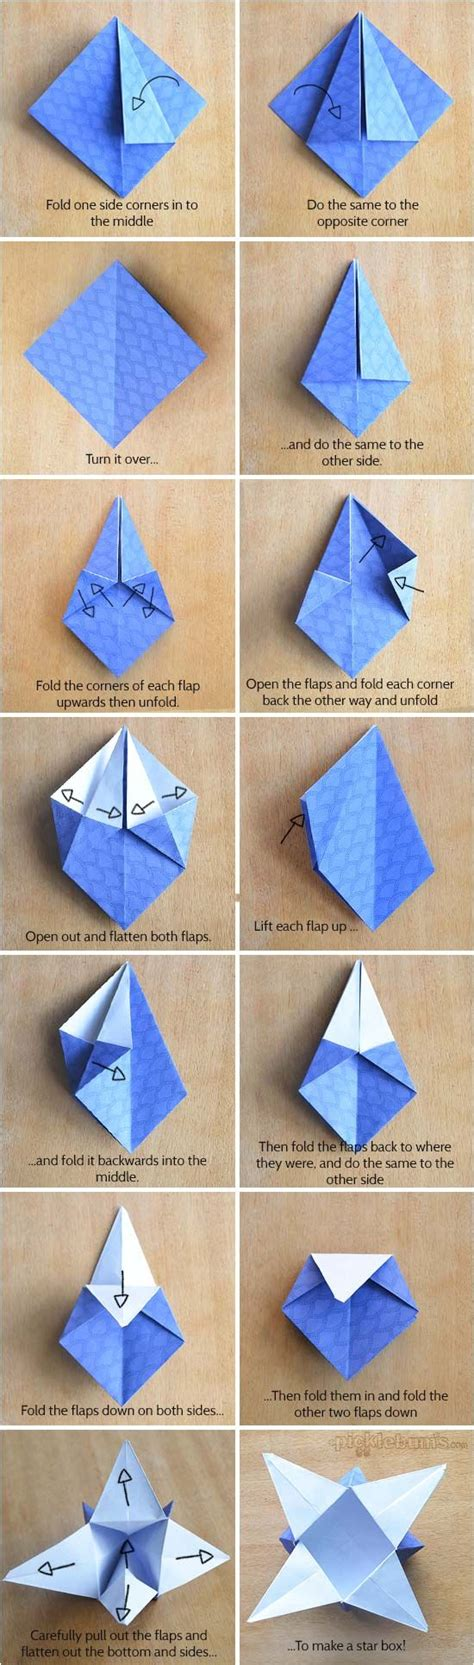 Where Do You Get Origami Paper - origami paper tutorials and origami on